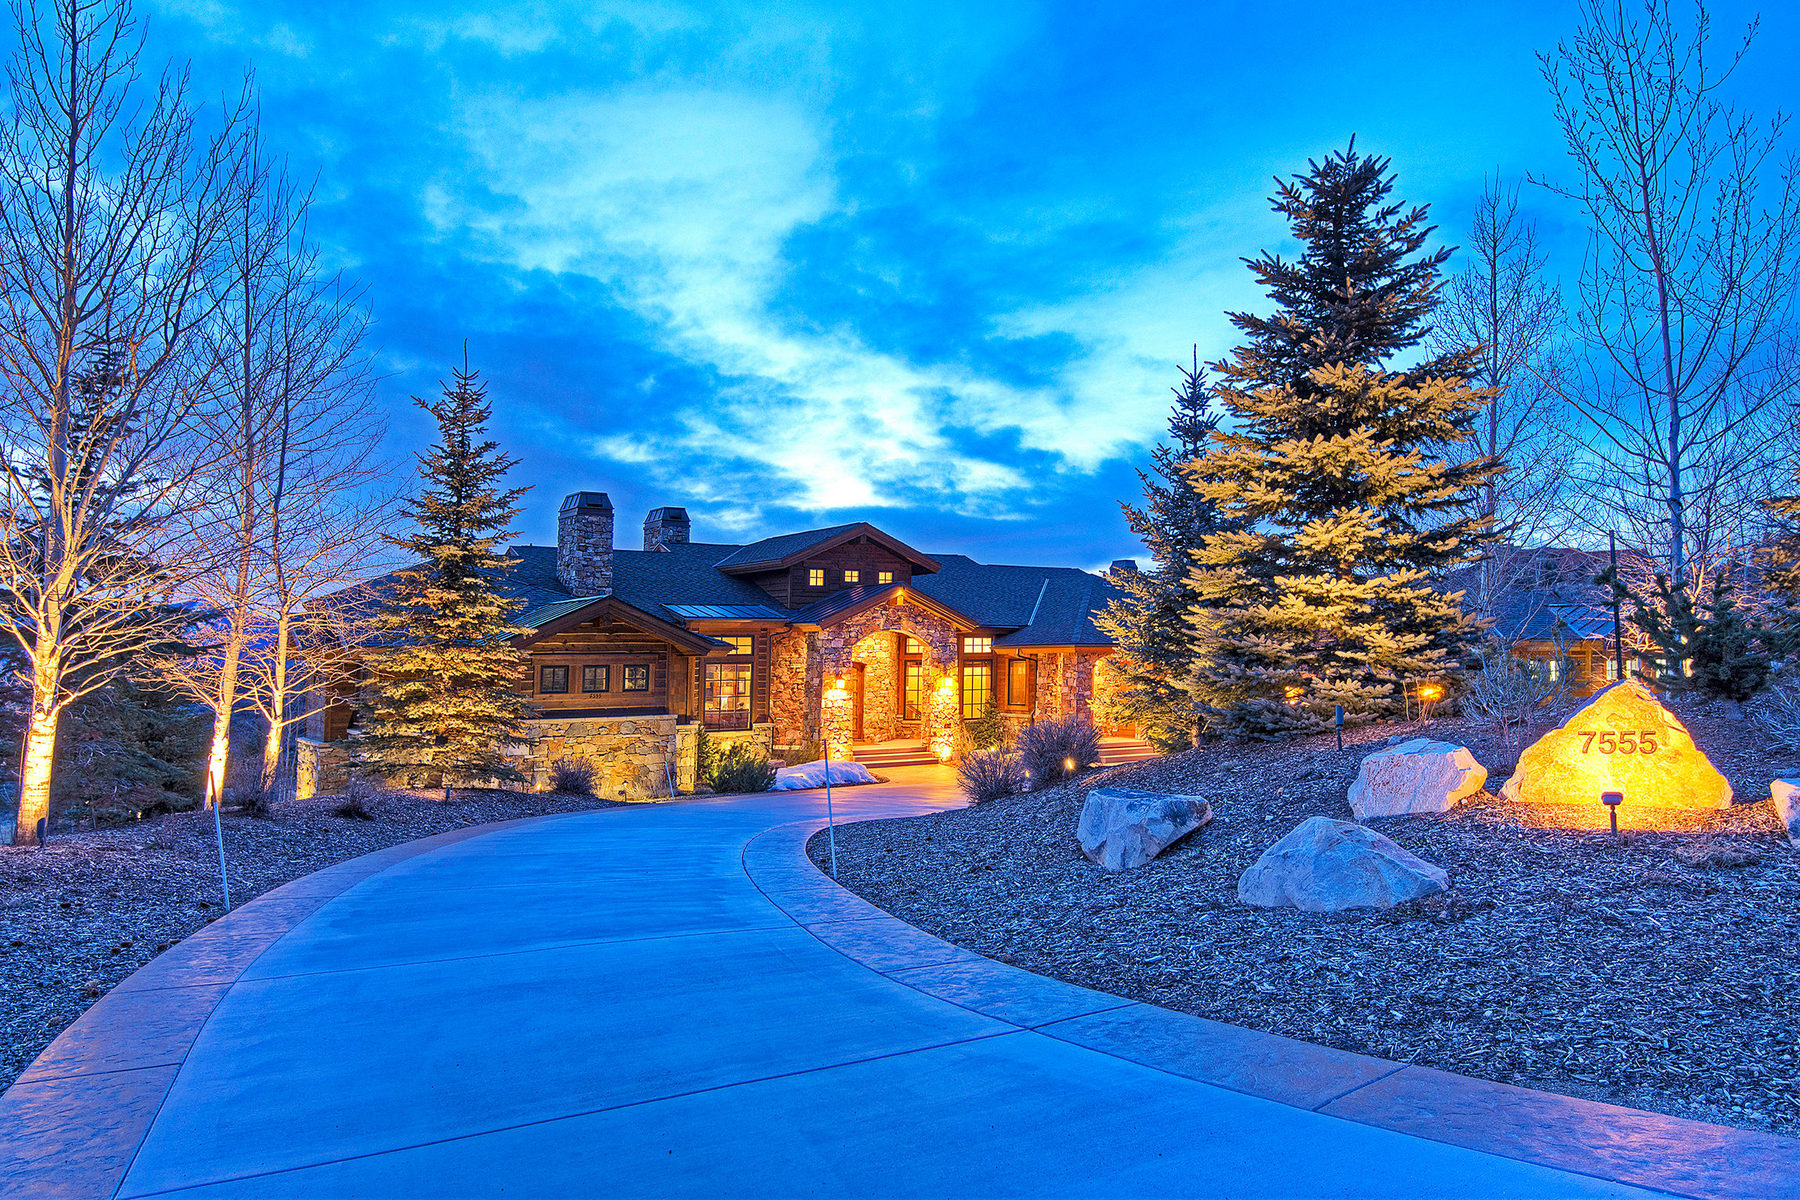 Moradia para Venda às Stunning Promontory Mountain Home With Golf & Ski Resort Views 7555 N. Ranch Club Trail Lot #23 Park City, Utah 84098 Estados Unidos